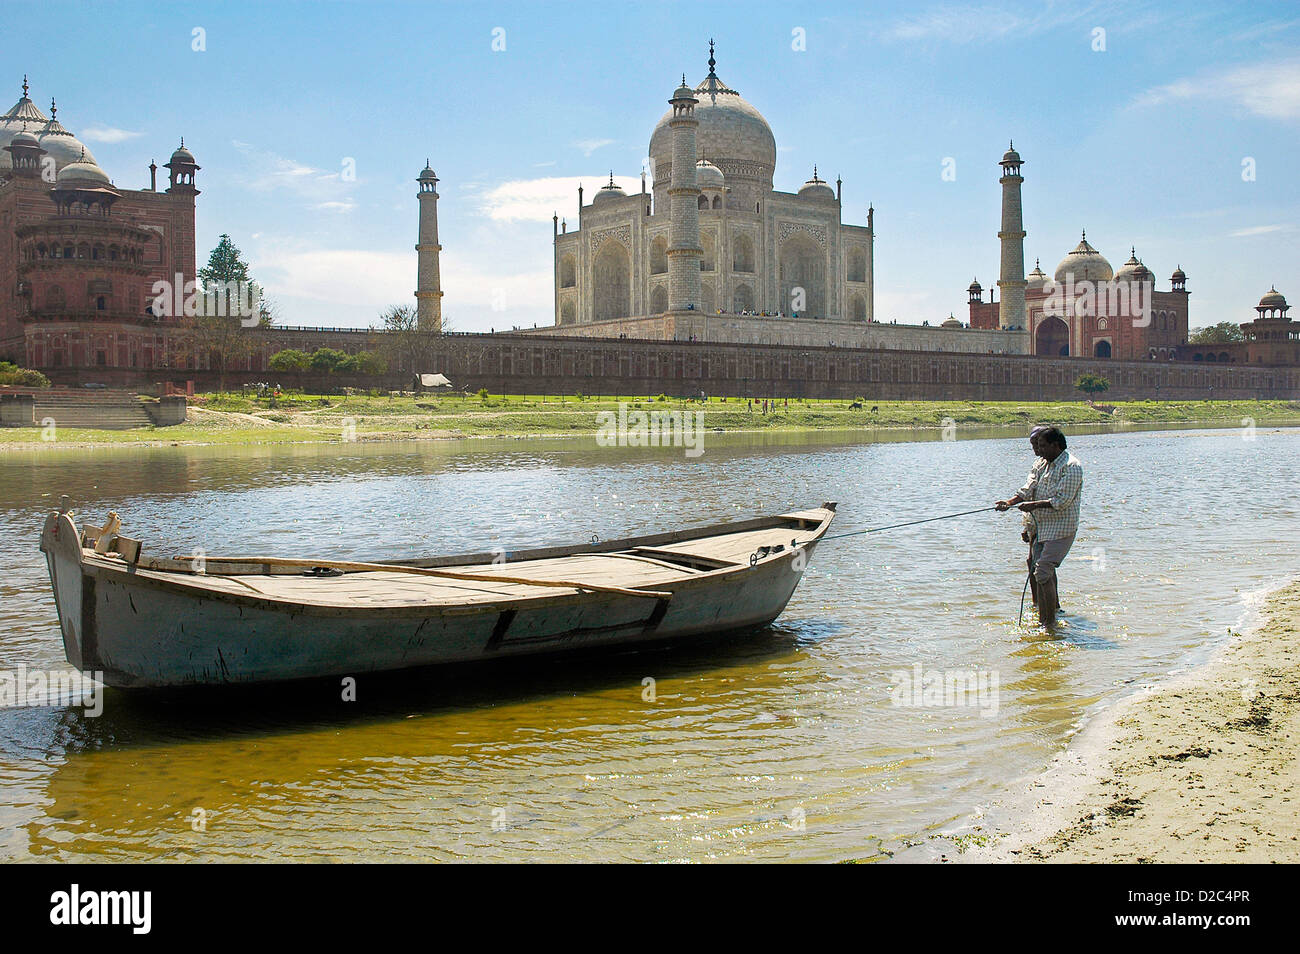 Boatmen Tows His Boat To The Shore Of The River Yamuna Flowing Besides The Taj Mahal , Agra, Delhi, India - Stock Image